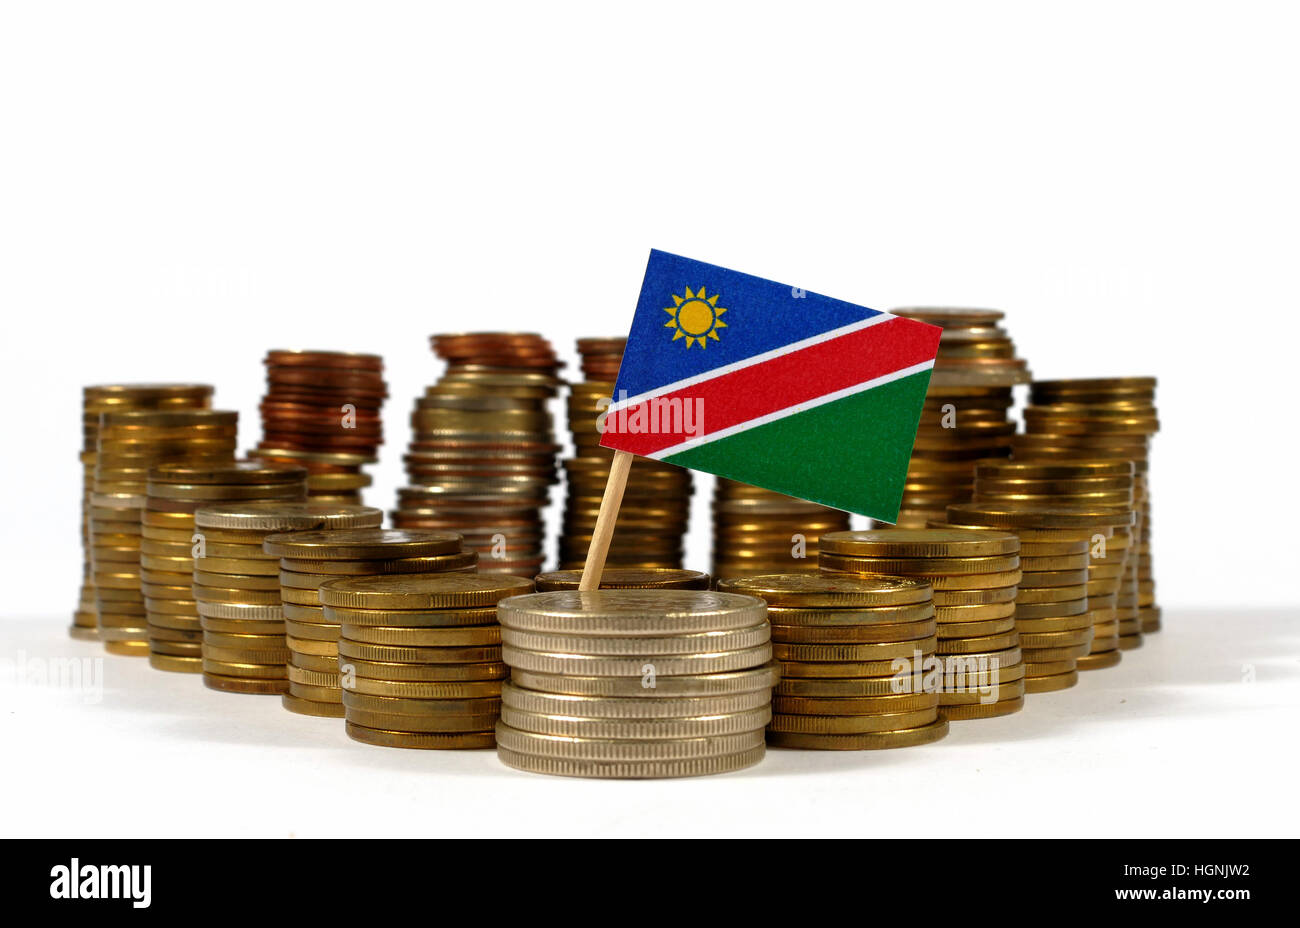 Namibia flag waving with stack of money coins - Stock Image